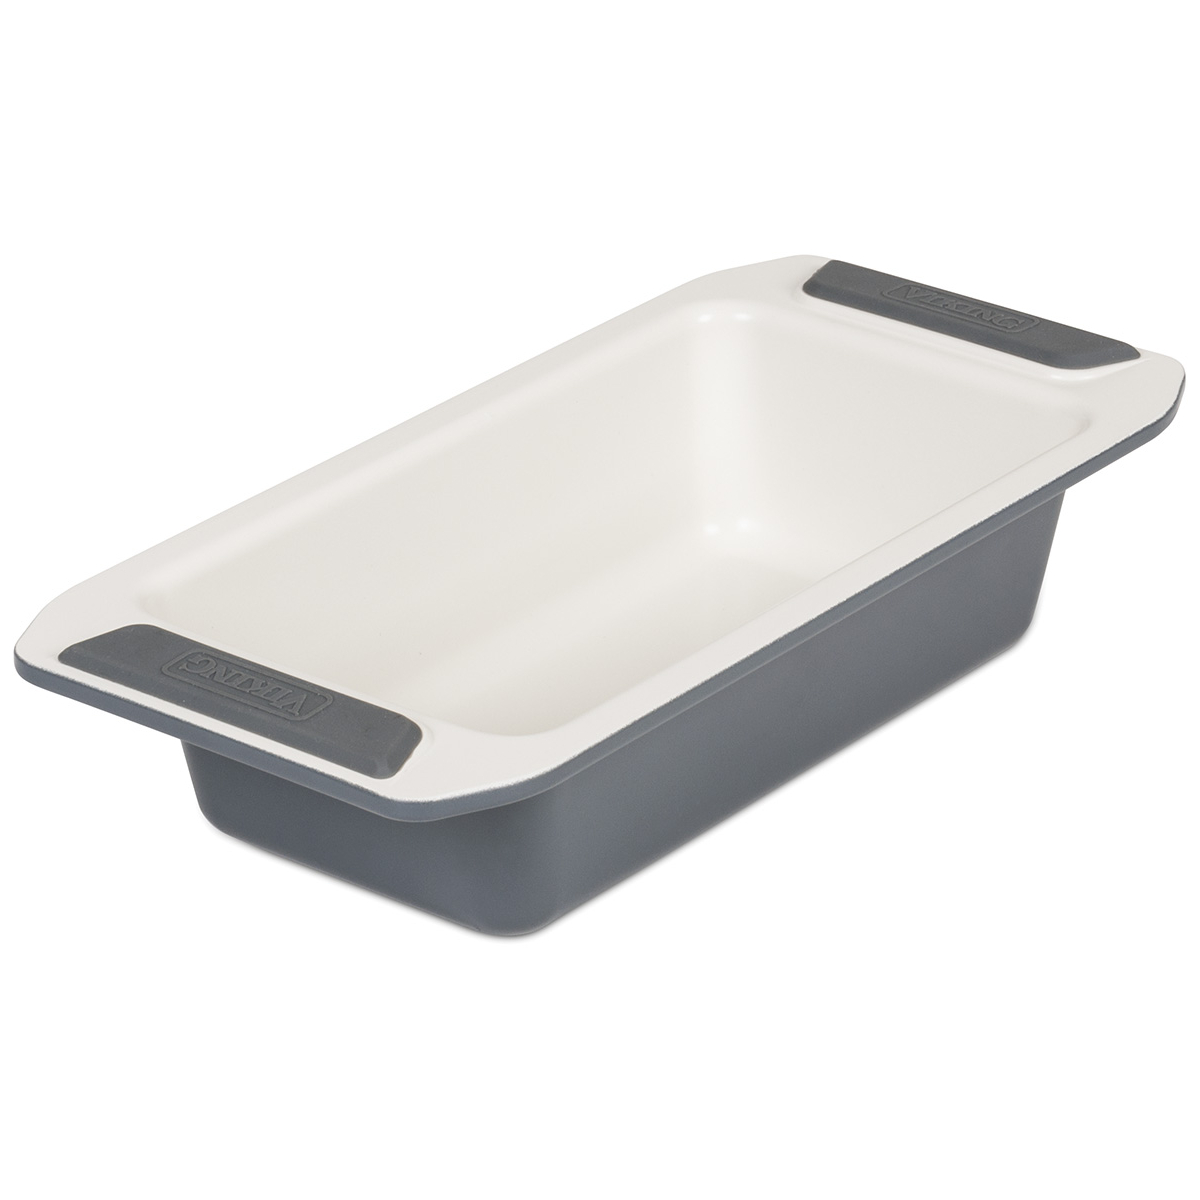 Viking Cream and Gray Coated Nonstick Ceramic 8 Inch Loaf Pan